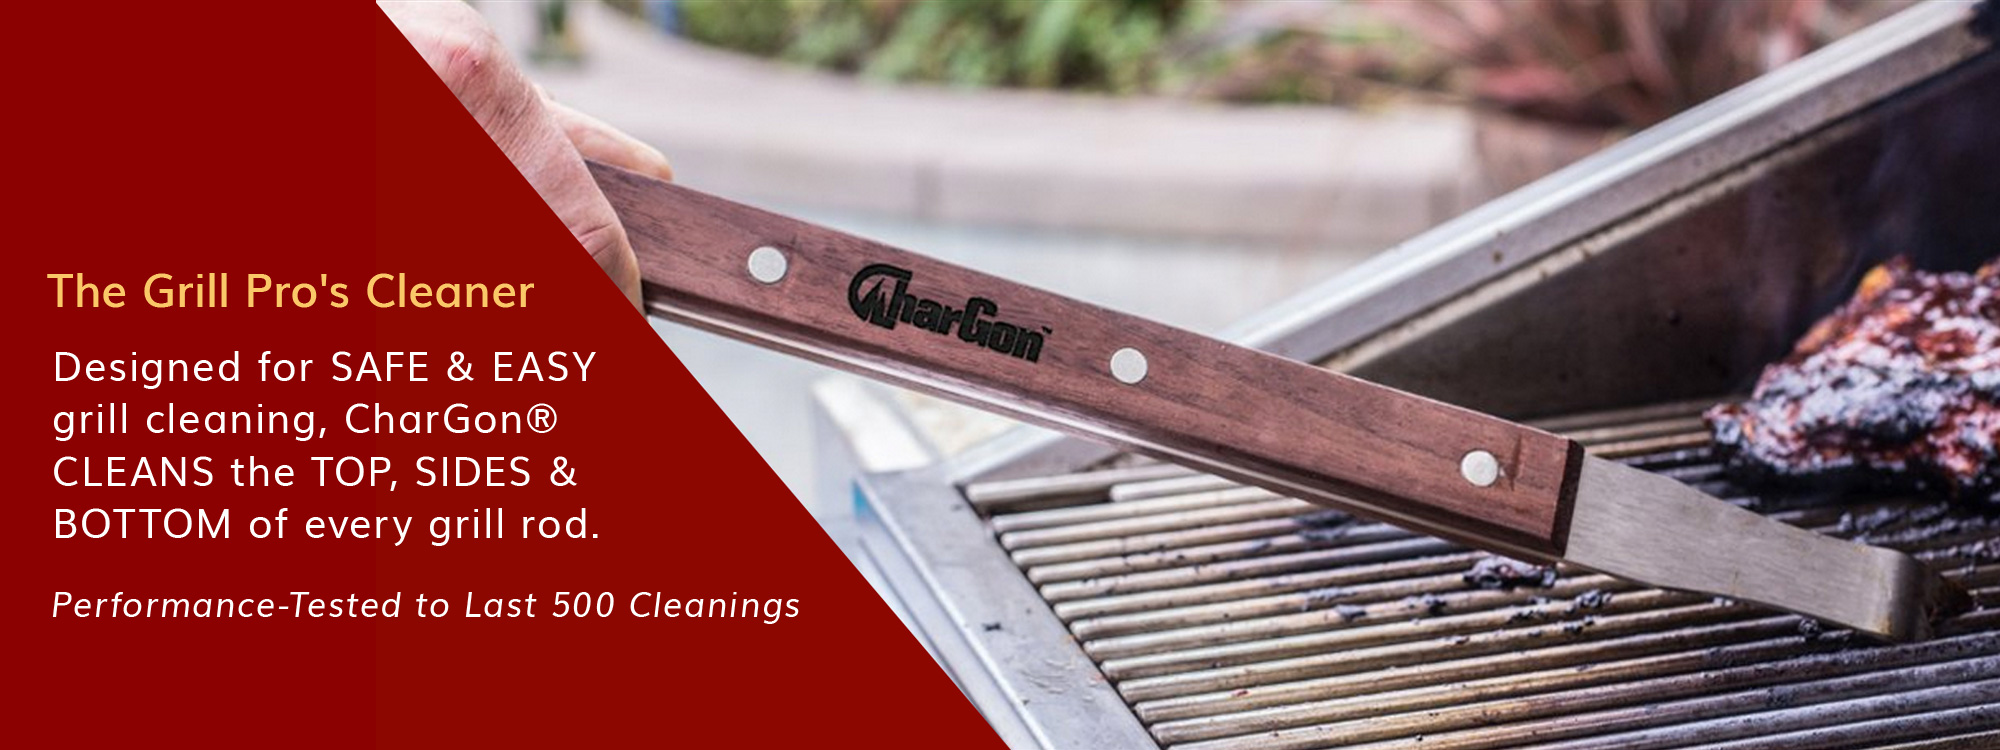 THE GRILL PRO'S CLEANER. Designed for SAFE and EASY grill cleaning, CharGon CLEANS the TOP, SIDES & BOTTOM of every grill rod. Performance-Tested to Last 500 Cleanings